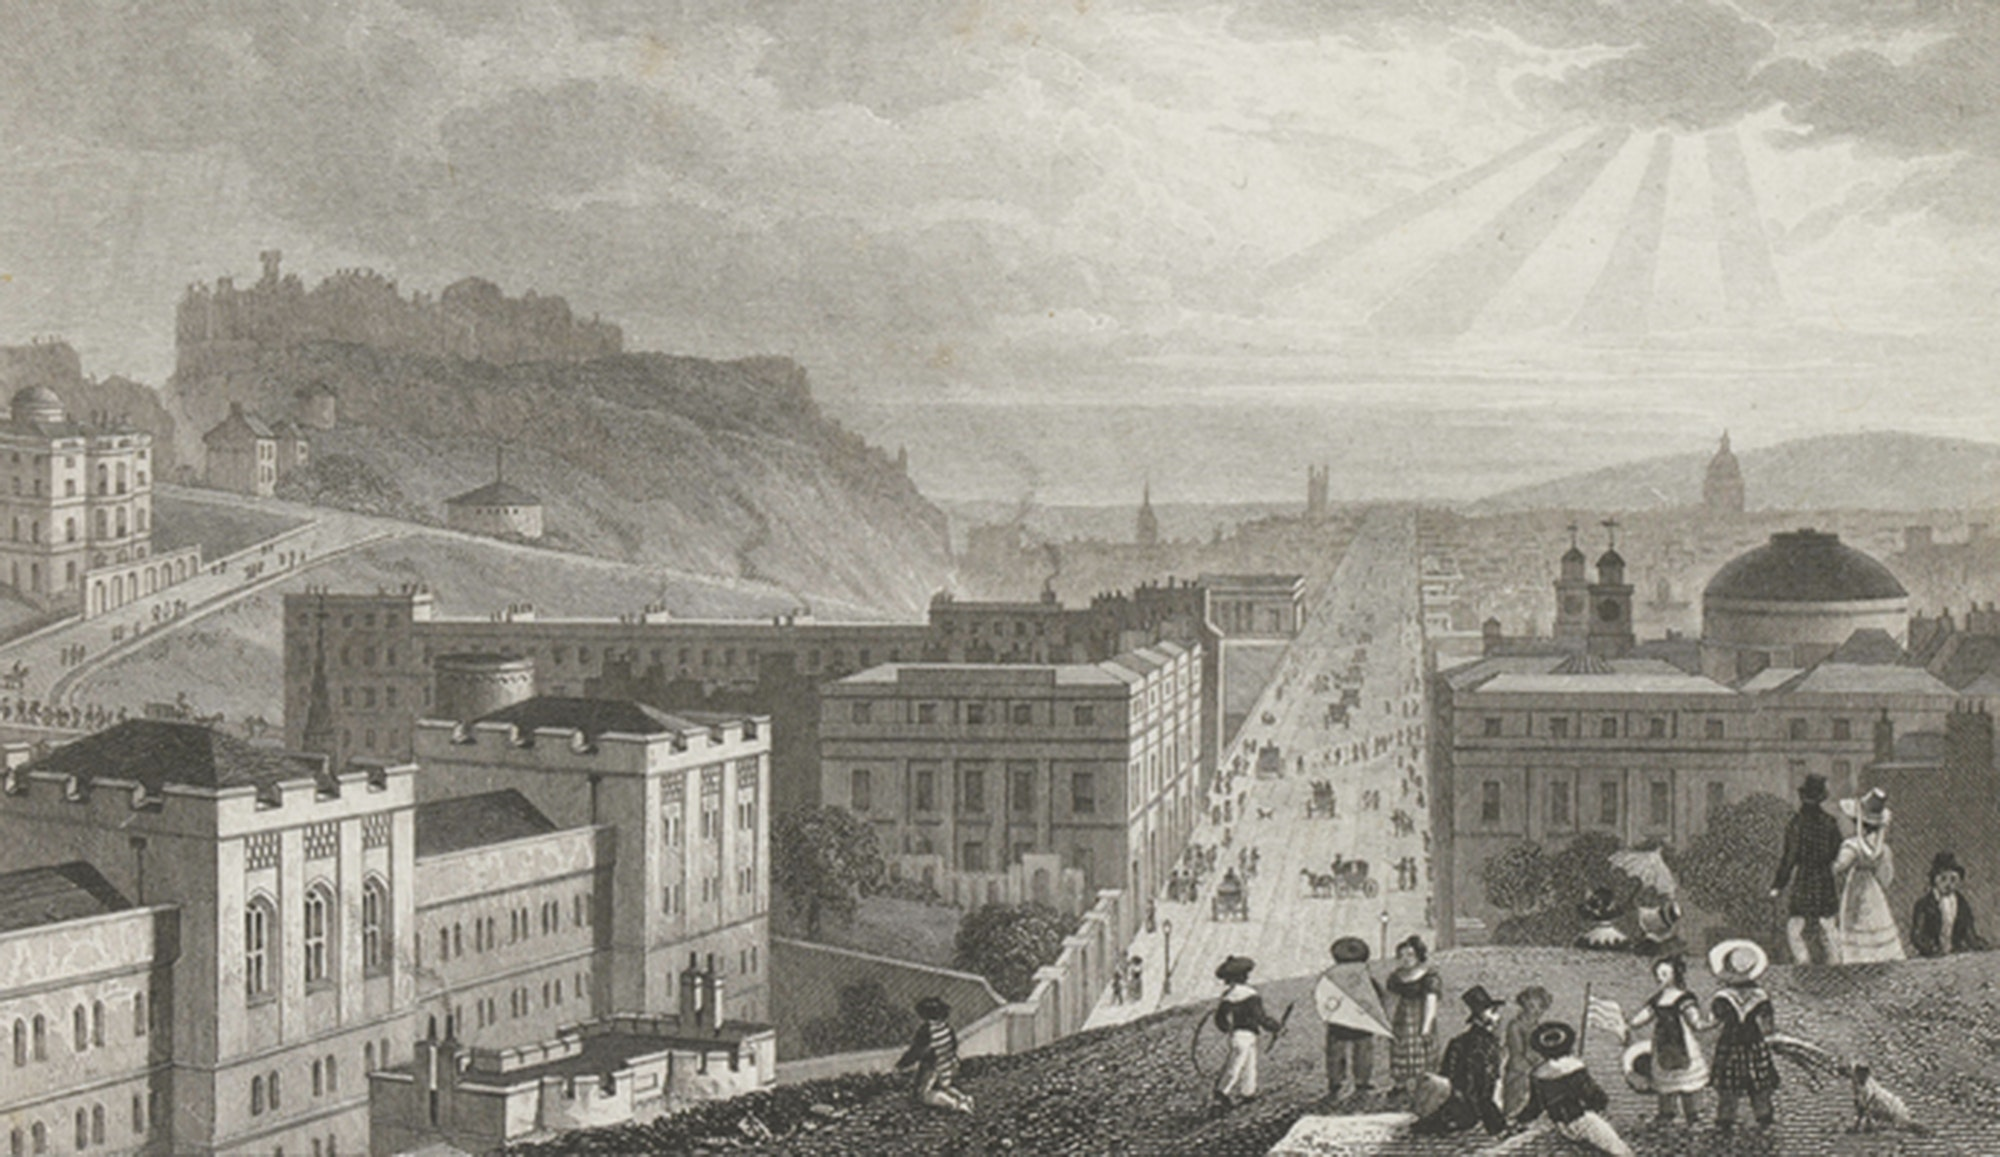 Edinburgh From Calton Hill, Thomas Shepherd, 1829, c/o City of Edinburgh Council – Museums and Galleries www.capitalcollections.org.uk